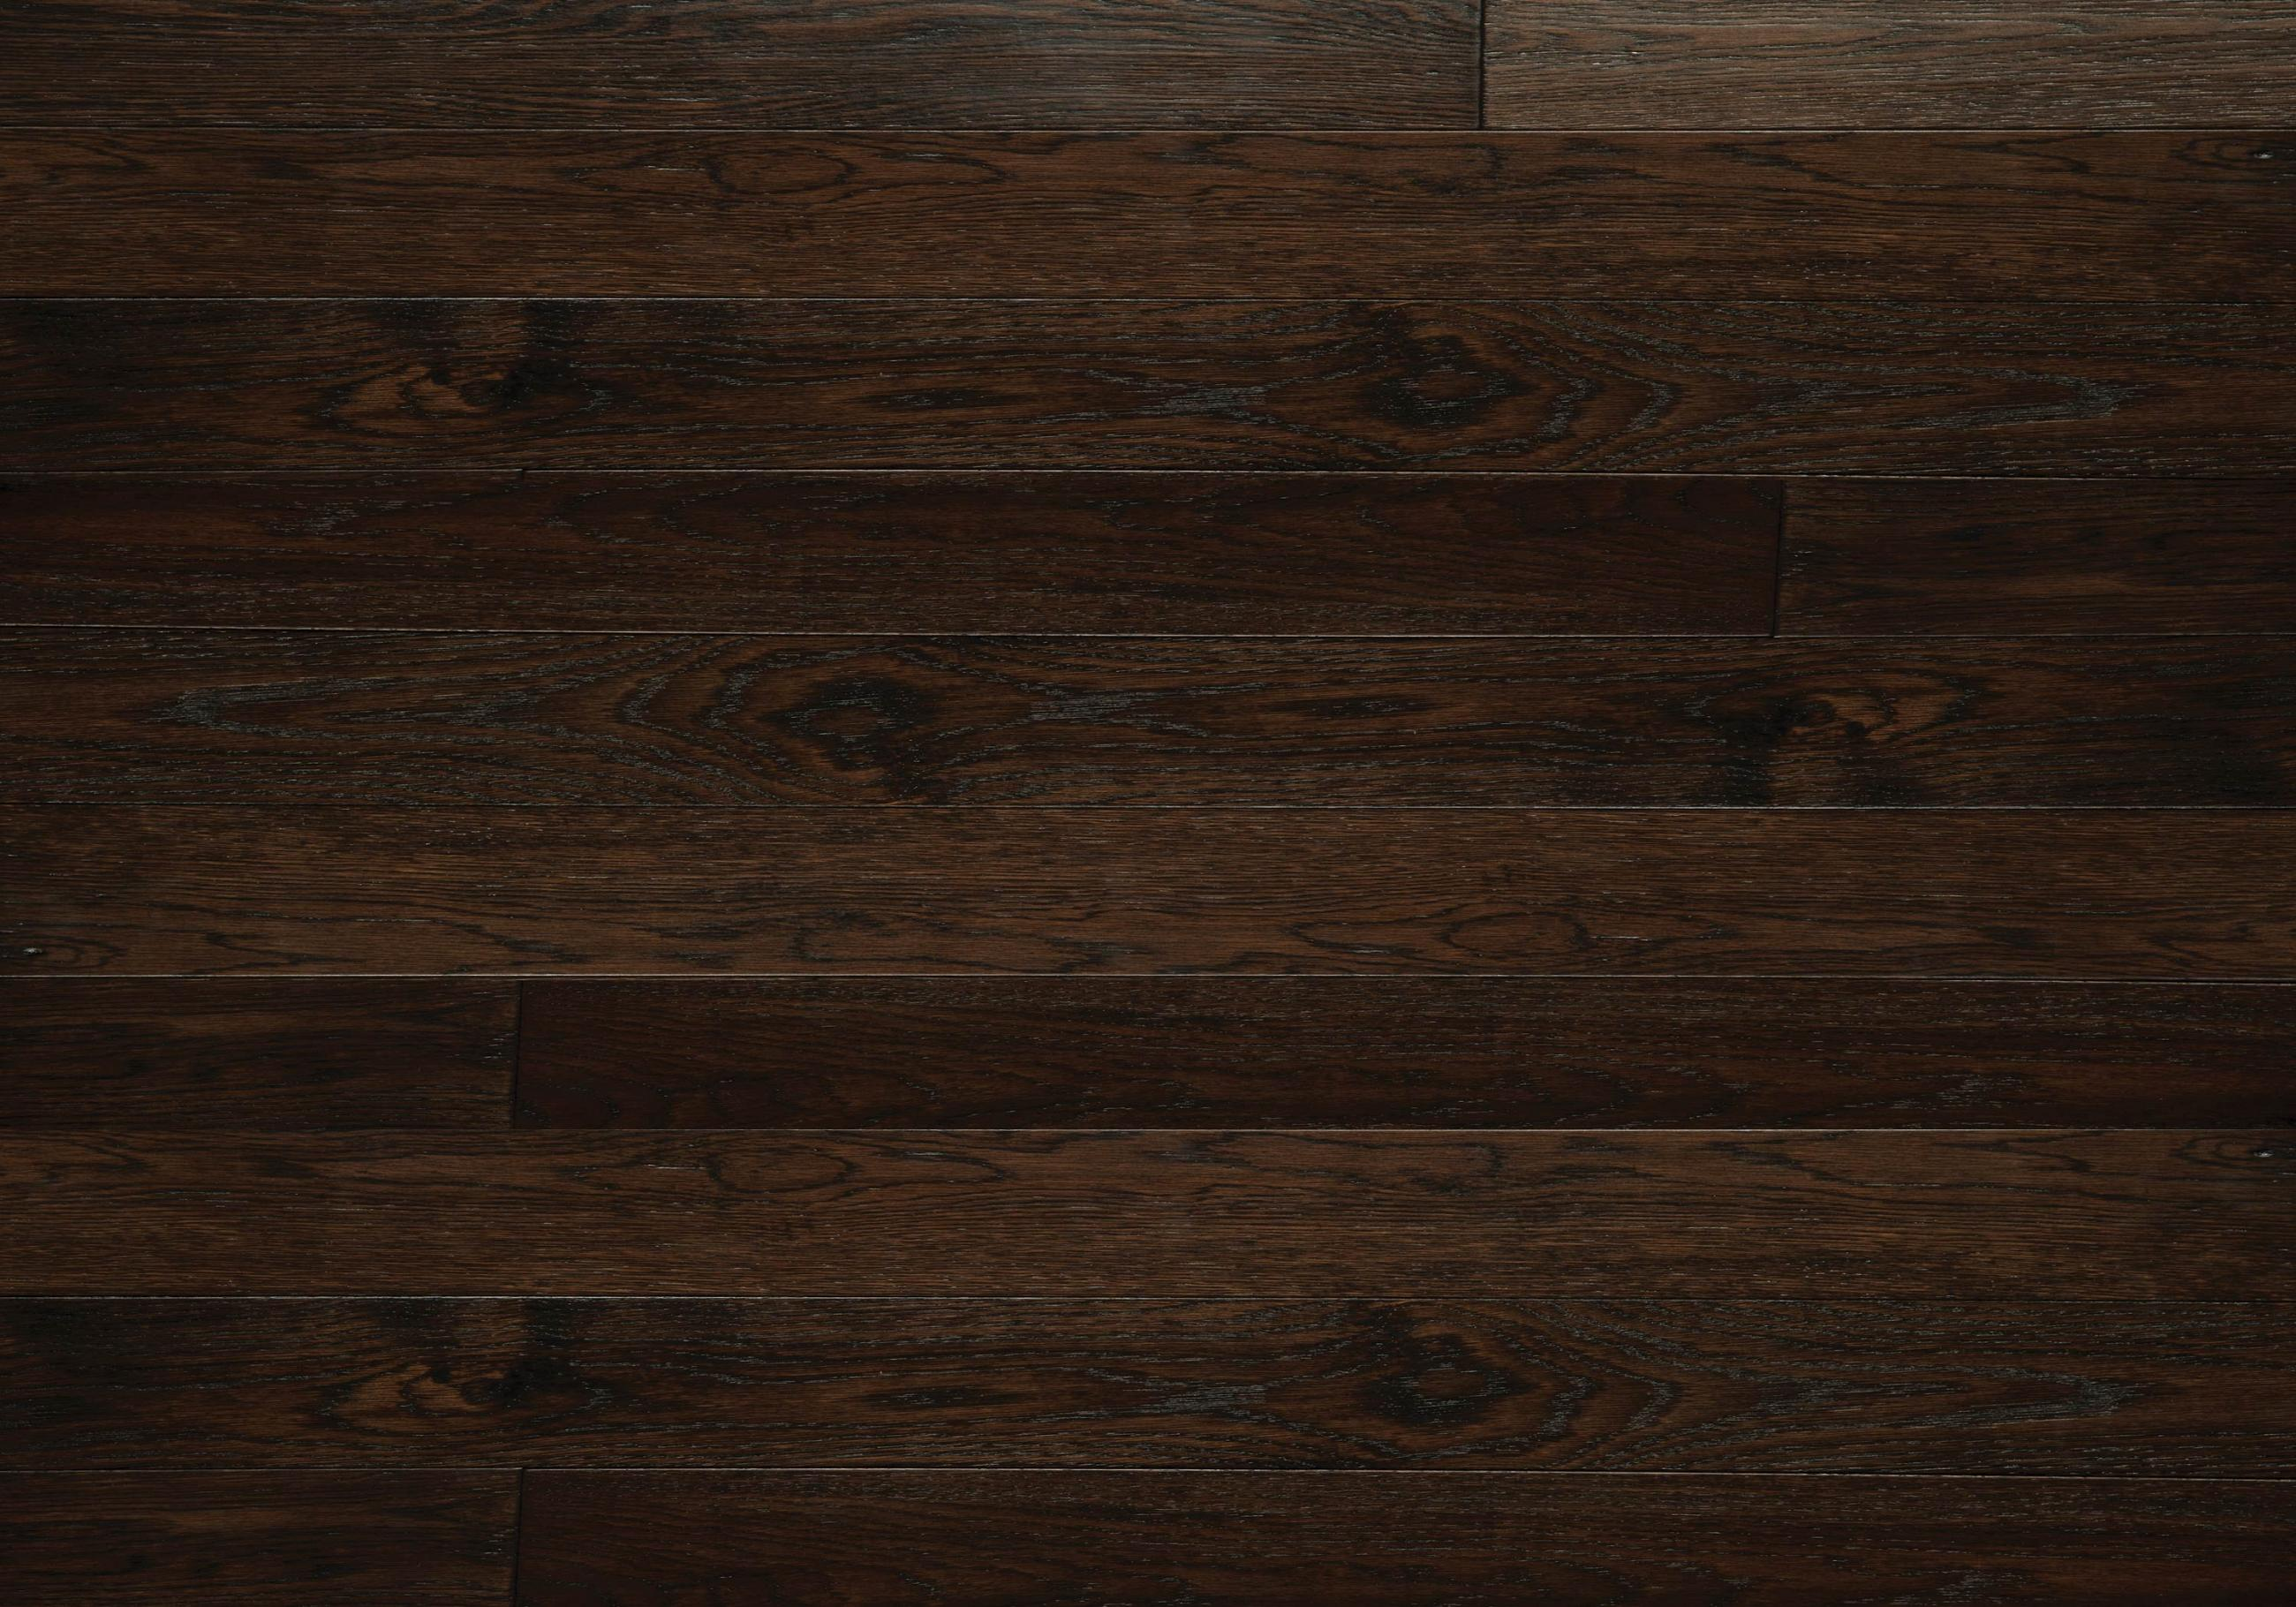 dark wood vs light wood floors - wood floors